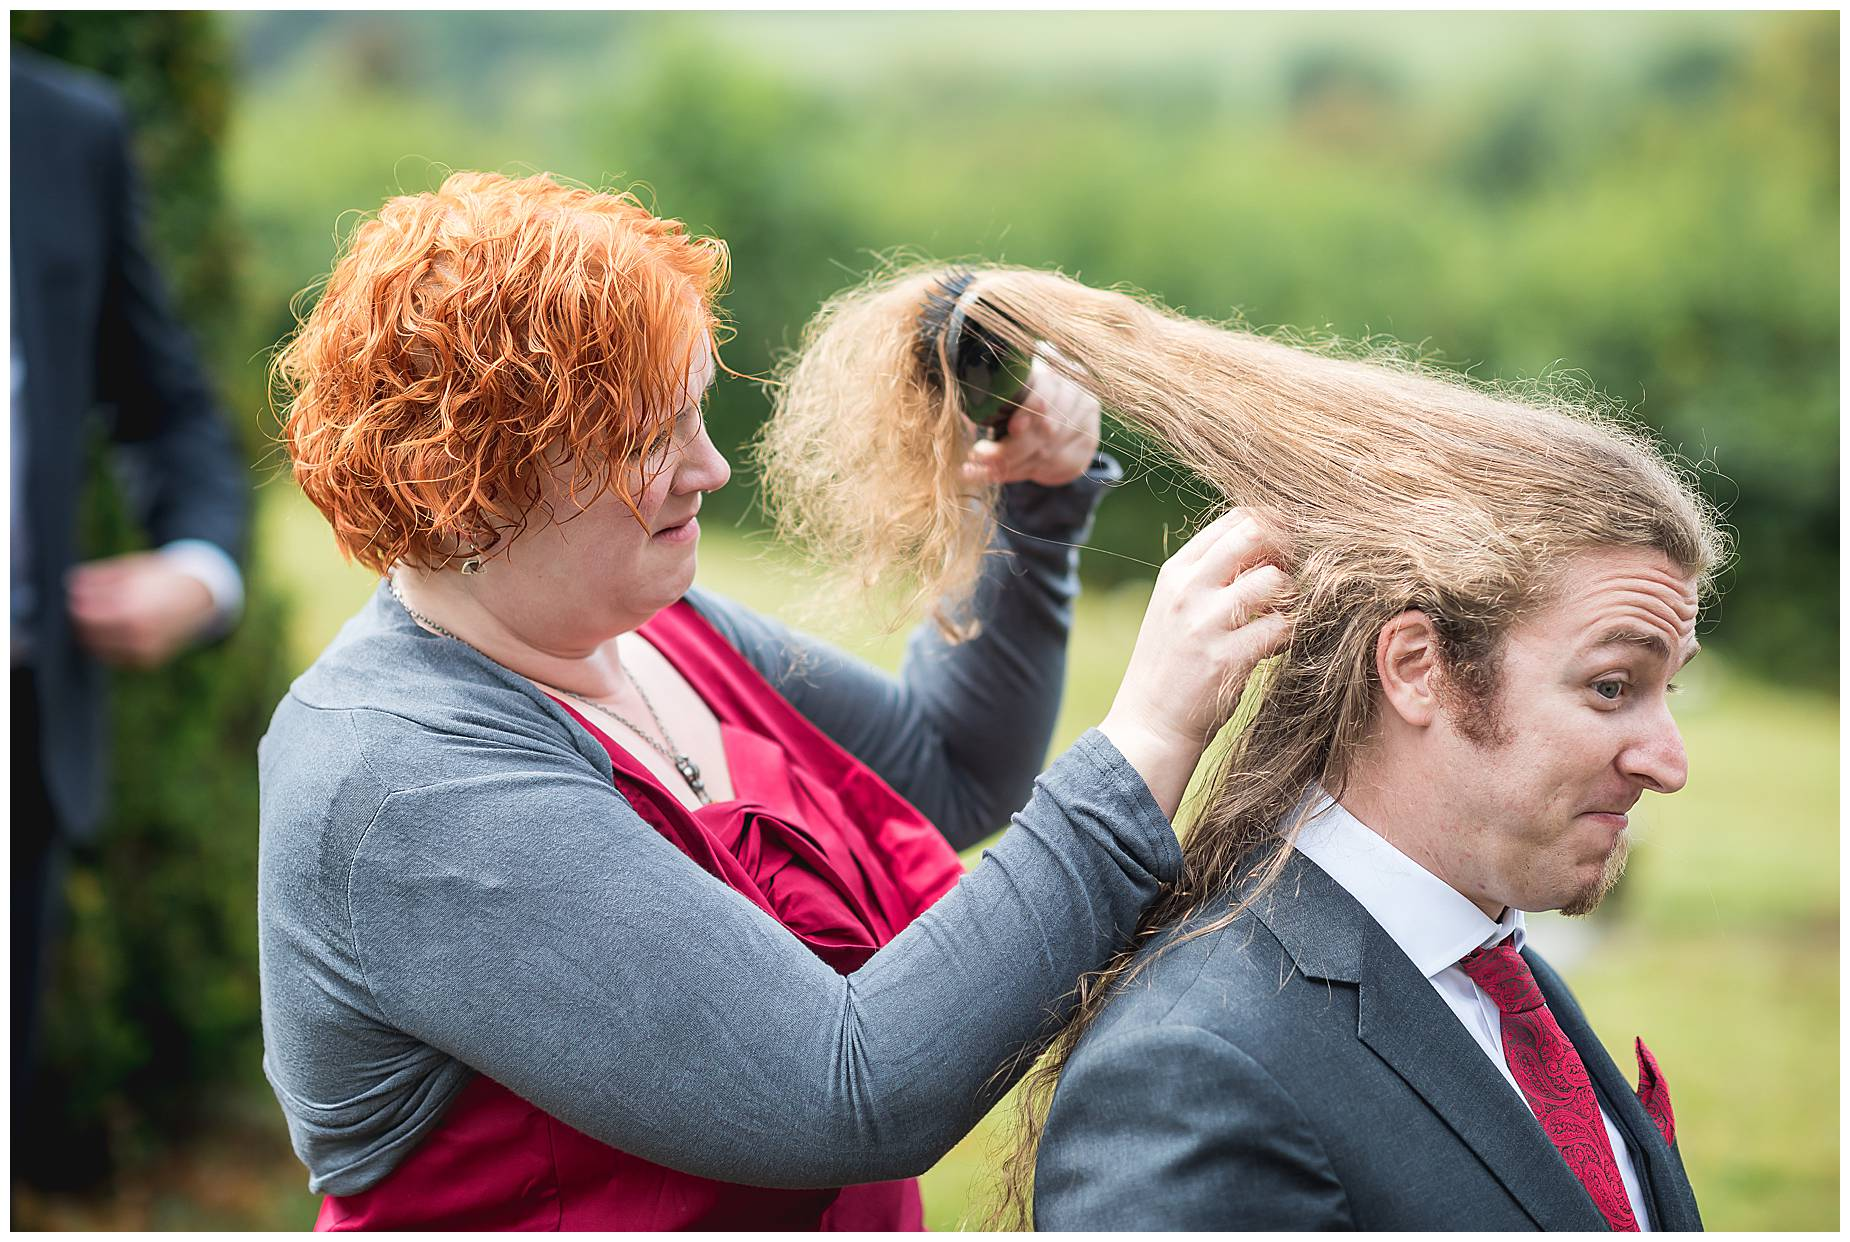 man with long hair gets his hair brushed